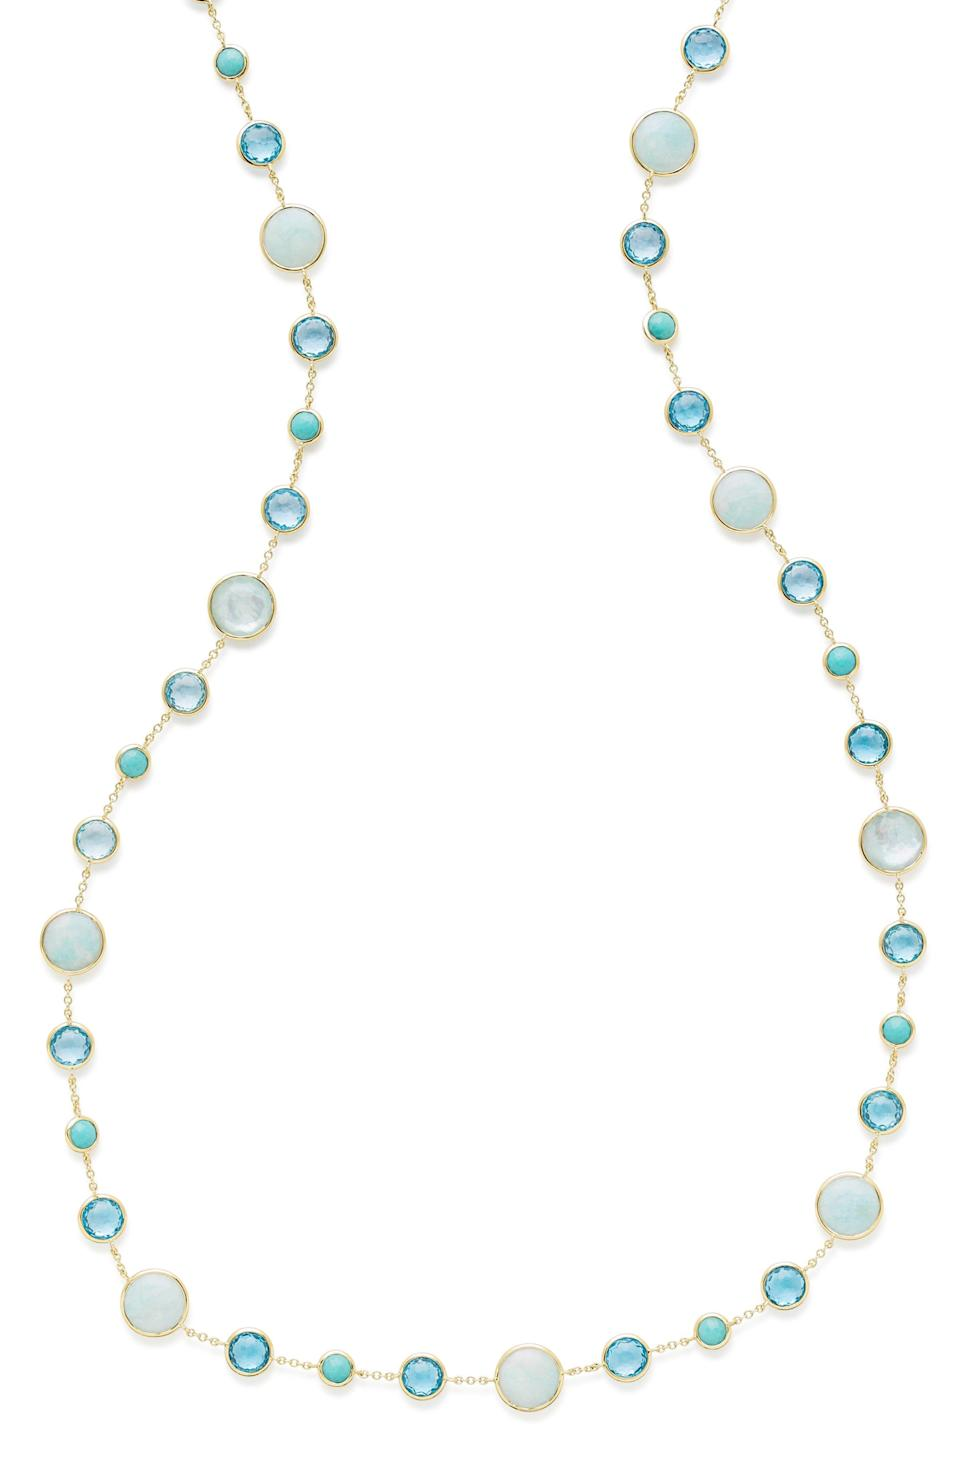 """<p><strong>IPPOLITA</strong></p><p>nordstrom.com</p><p><strong>$4946.25</strong></p><p><a href=""""https://go.redirectingat.com?id=74968X1596630&url=https%3A%2F%2Fshop.nordstrom.com%2Fs%2Fippolita-lollipop-lollitini-long-necklace%2F5275857&sref=https%3A%2F%2Fwww.townandcountrymag.com%2Fstyle%2Fjewelry-and-watches%2Fg37368162%2Ffine-jewelry-brands-at-nordstrom%2F"""" rel=""""nofollow noopener"""" target=""""_blank"""" data-ylk=""""slk:Shop Now"""" class=""""link rapid-noclick-resp"""">Shop Now</a></p><p>Playful pops of color and whimsical design is the calling card for the fun and fashionable fine jewelry of Ippolita. </p>"""